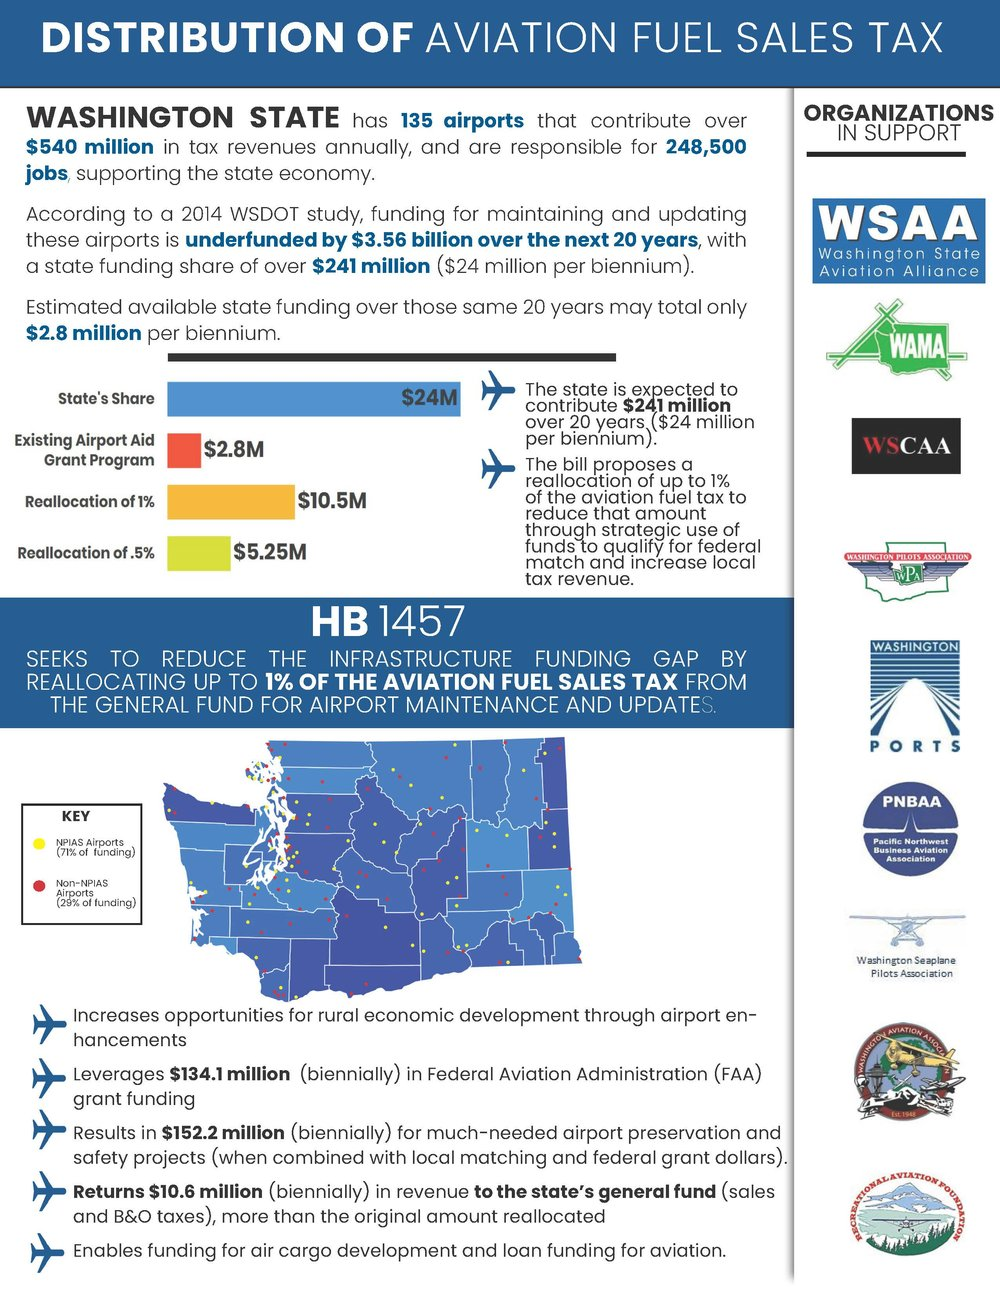 HB 1457, Distribution of Aircraft Sales Tax - Download